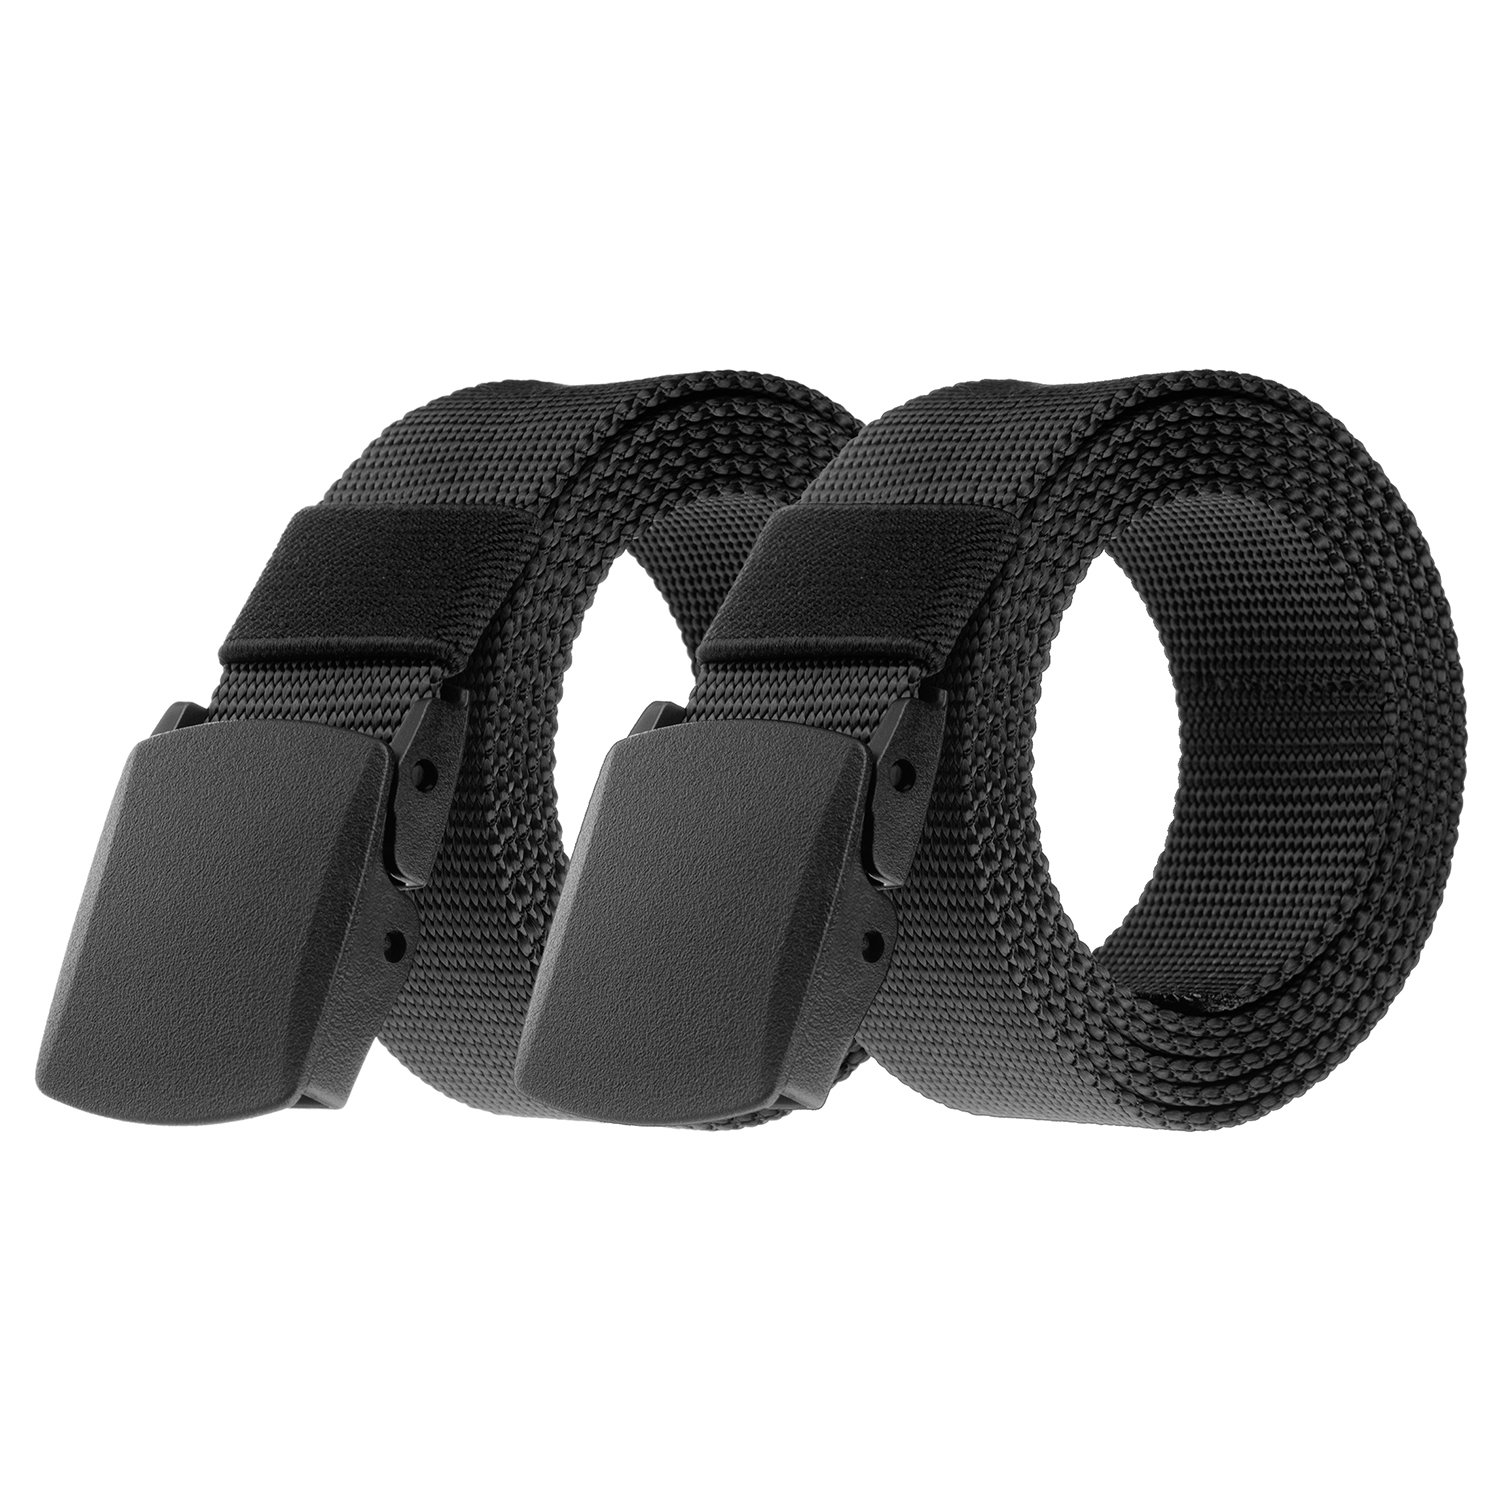 Titysur Tactical Belt Military Style Webbing Riggers Nylon Belt with Heavy-Duty Quick-Release Plastic Buckle,Web Belt 1.5 Wide 2 Pack